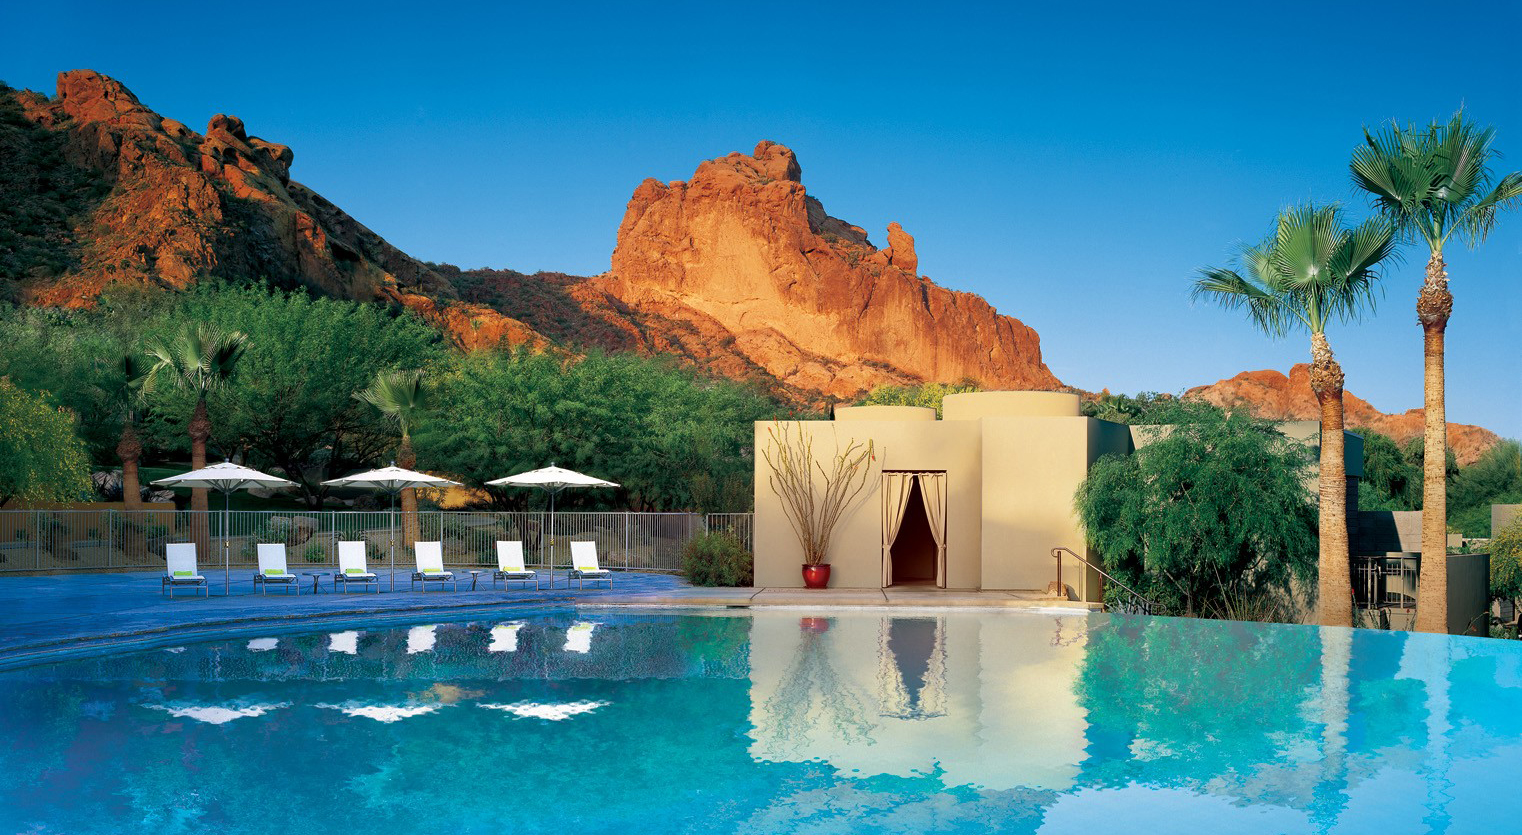 /blog/spa-travel/spa-vacation-idea-sanctuary-camelback-mountain-resort-spa/